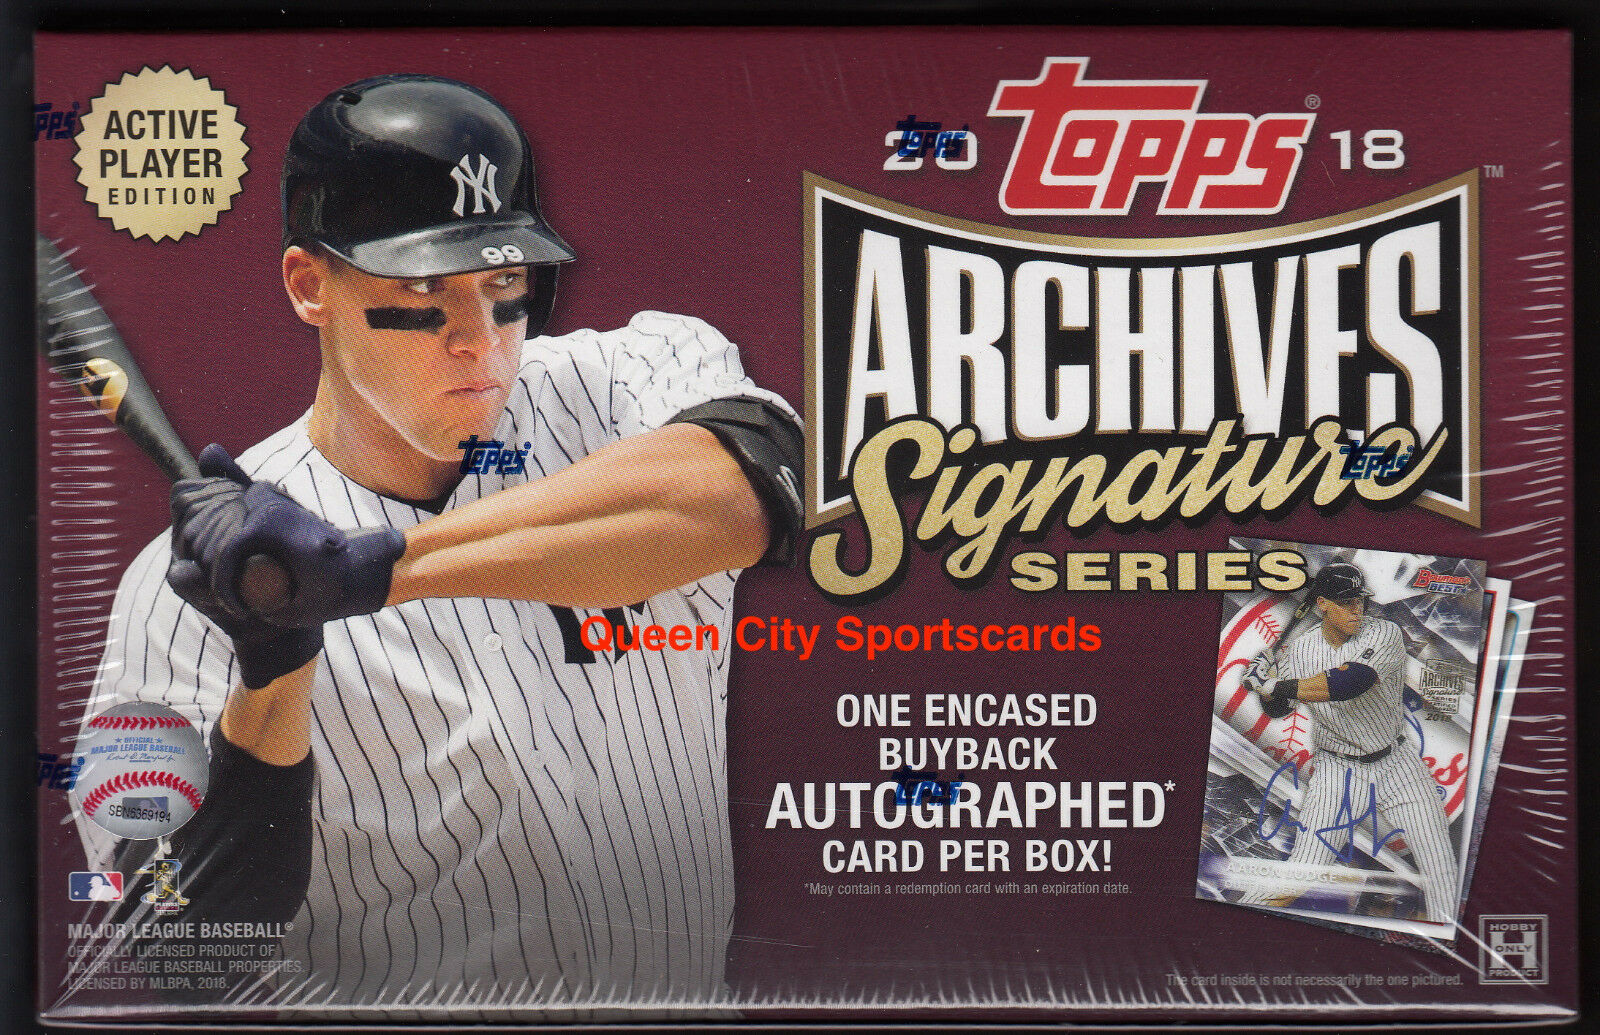 2018 Sealed Topps Archives Signature Series Active Baseball Factory Sealed 2018 Hobby Box 190244